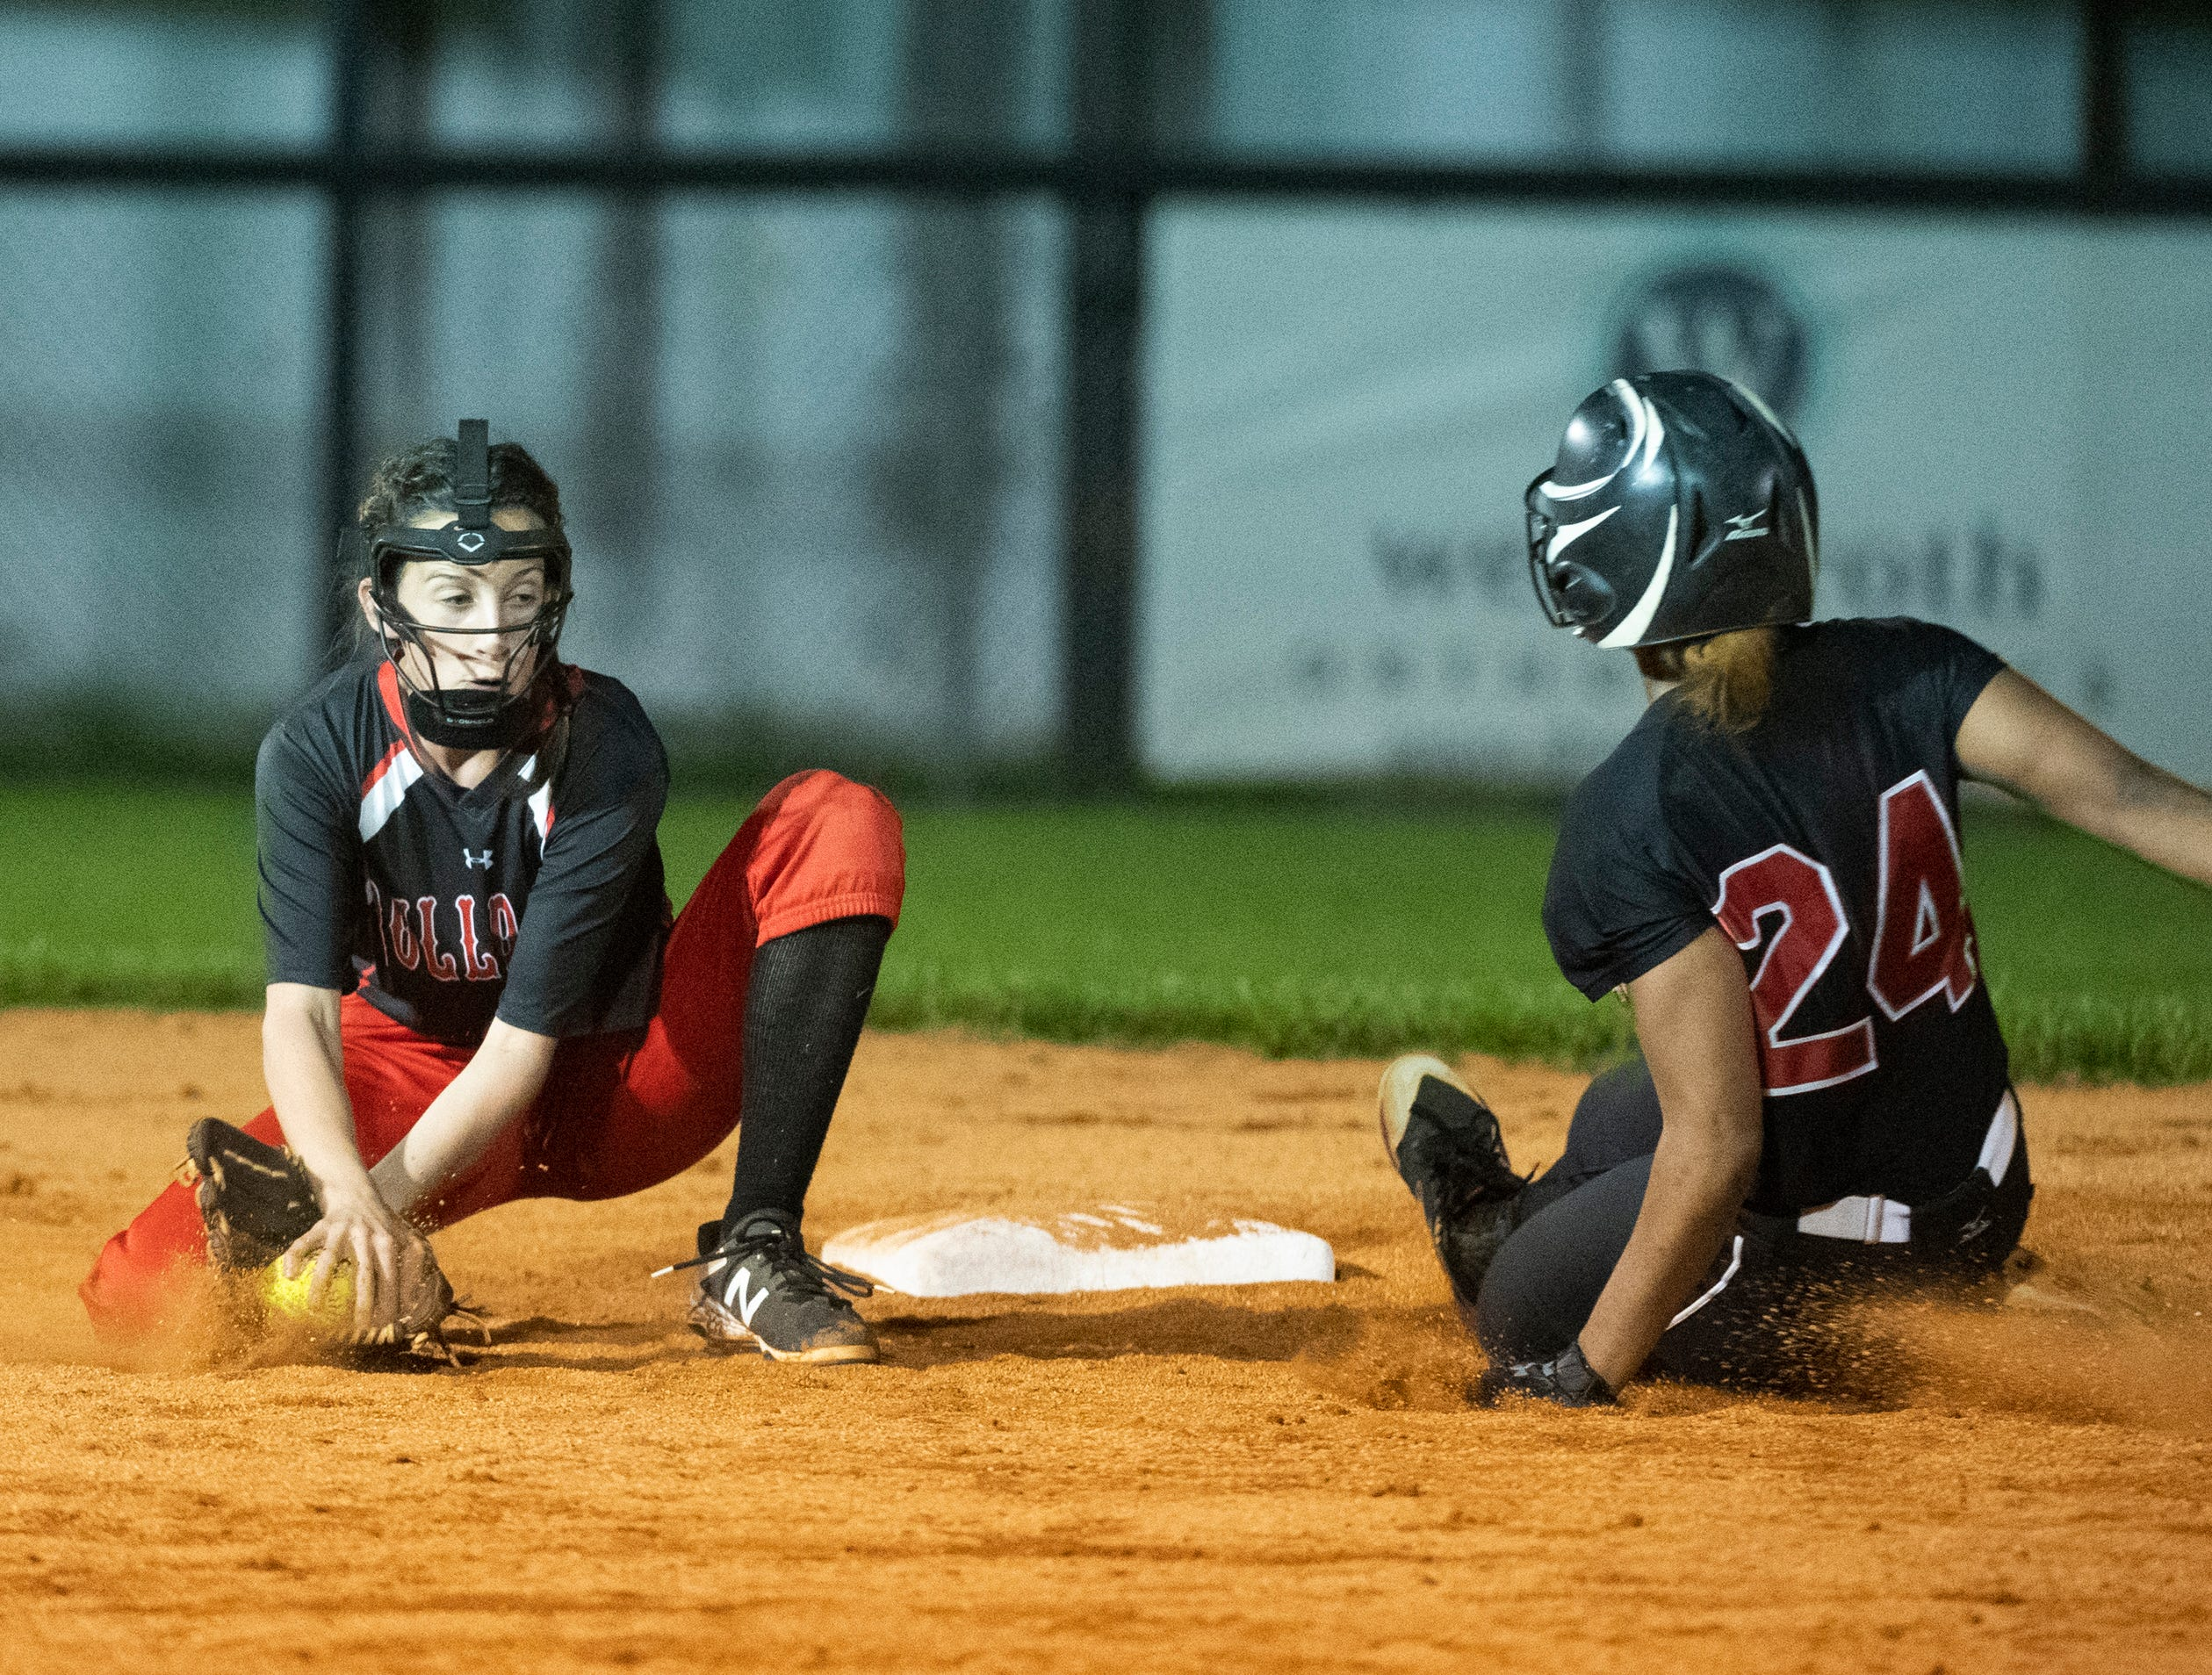 Hillcrest's Alexis Hargrove (24) is safe at second base while Boiling Springs' Alexis McFalls (6) gets the ball during the game at Hillcrest Friday, April 12, 2019.